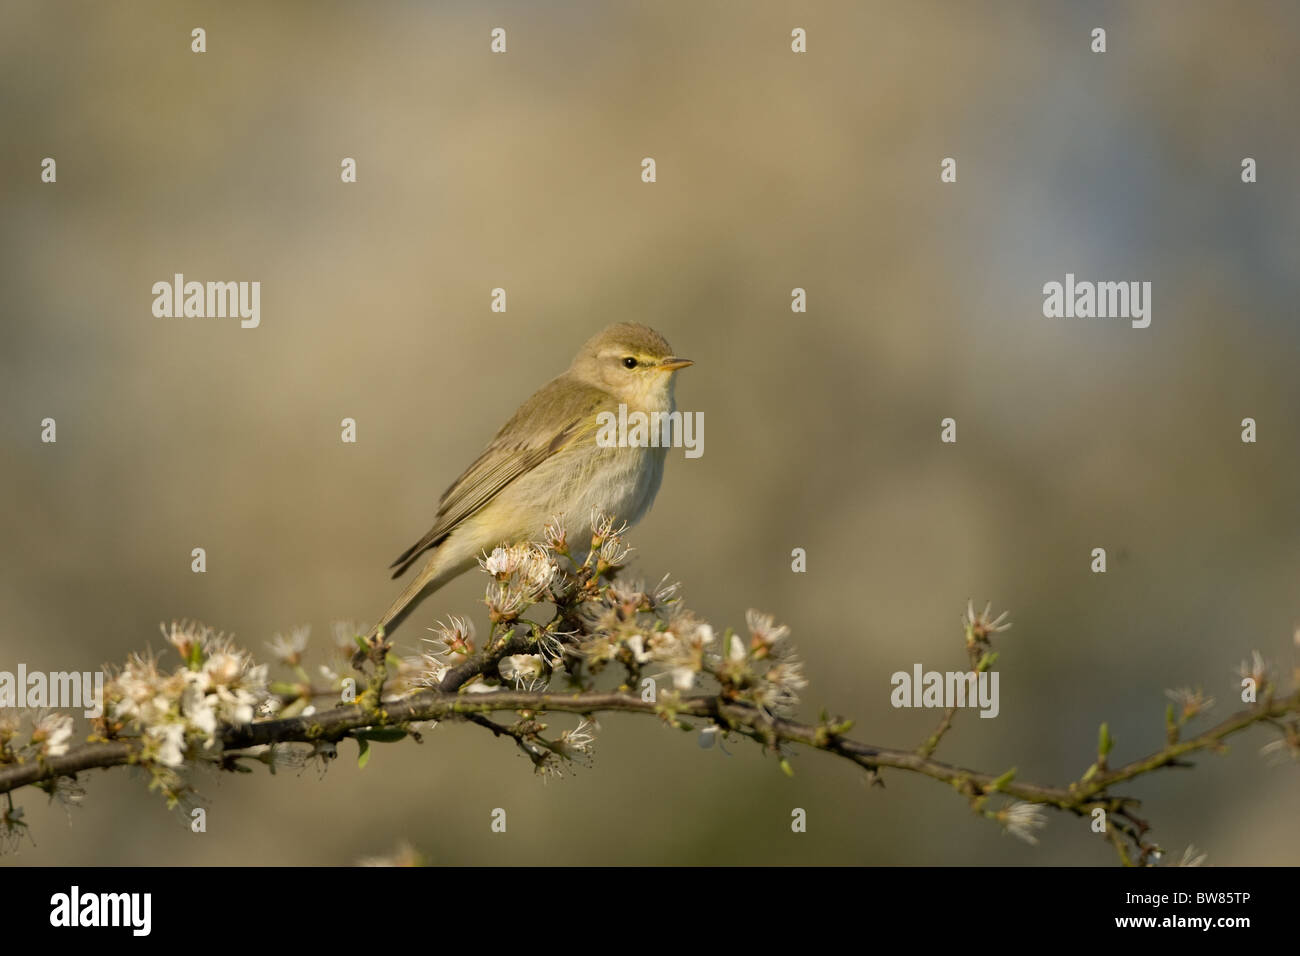 The Willow Warbler (Phylloscopus trochilus) is a very common and widespread leaf warbler. Stock Photo